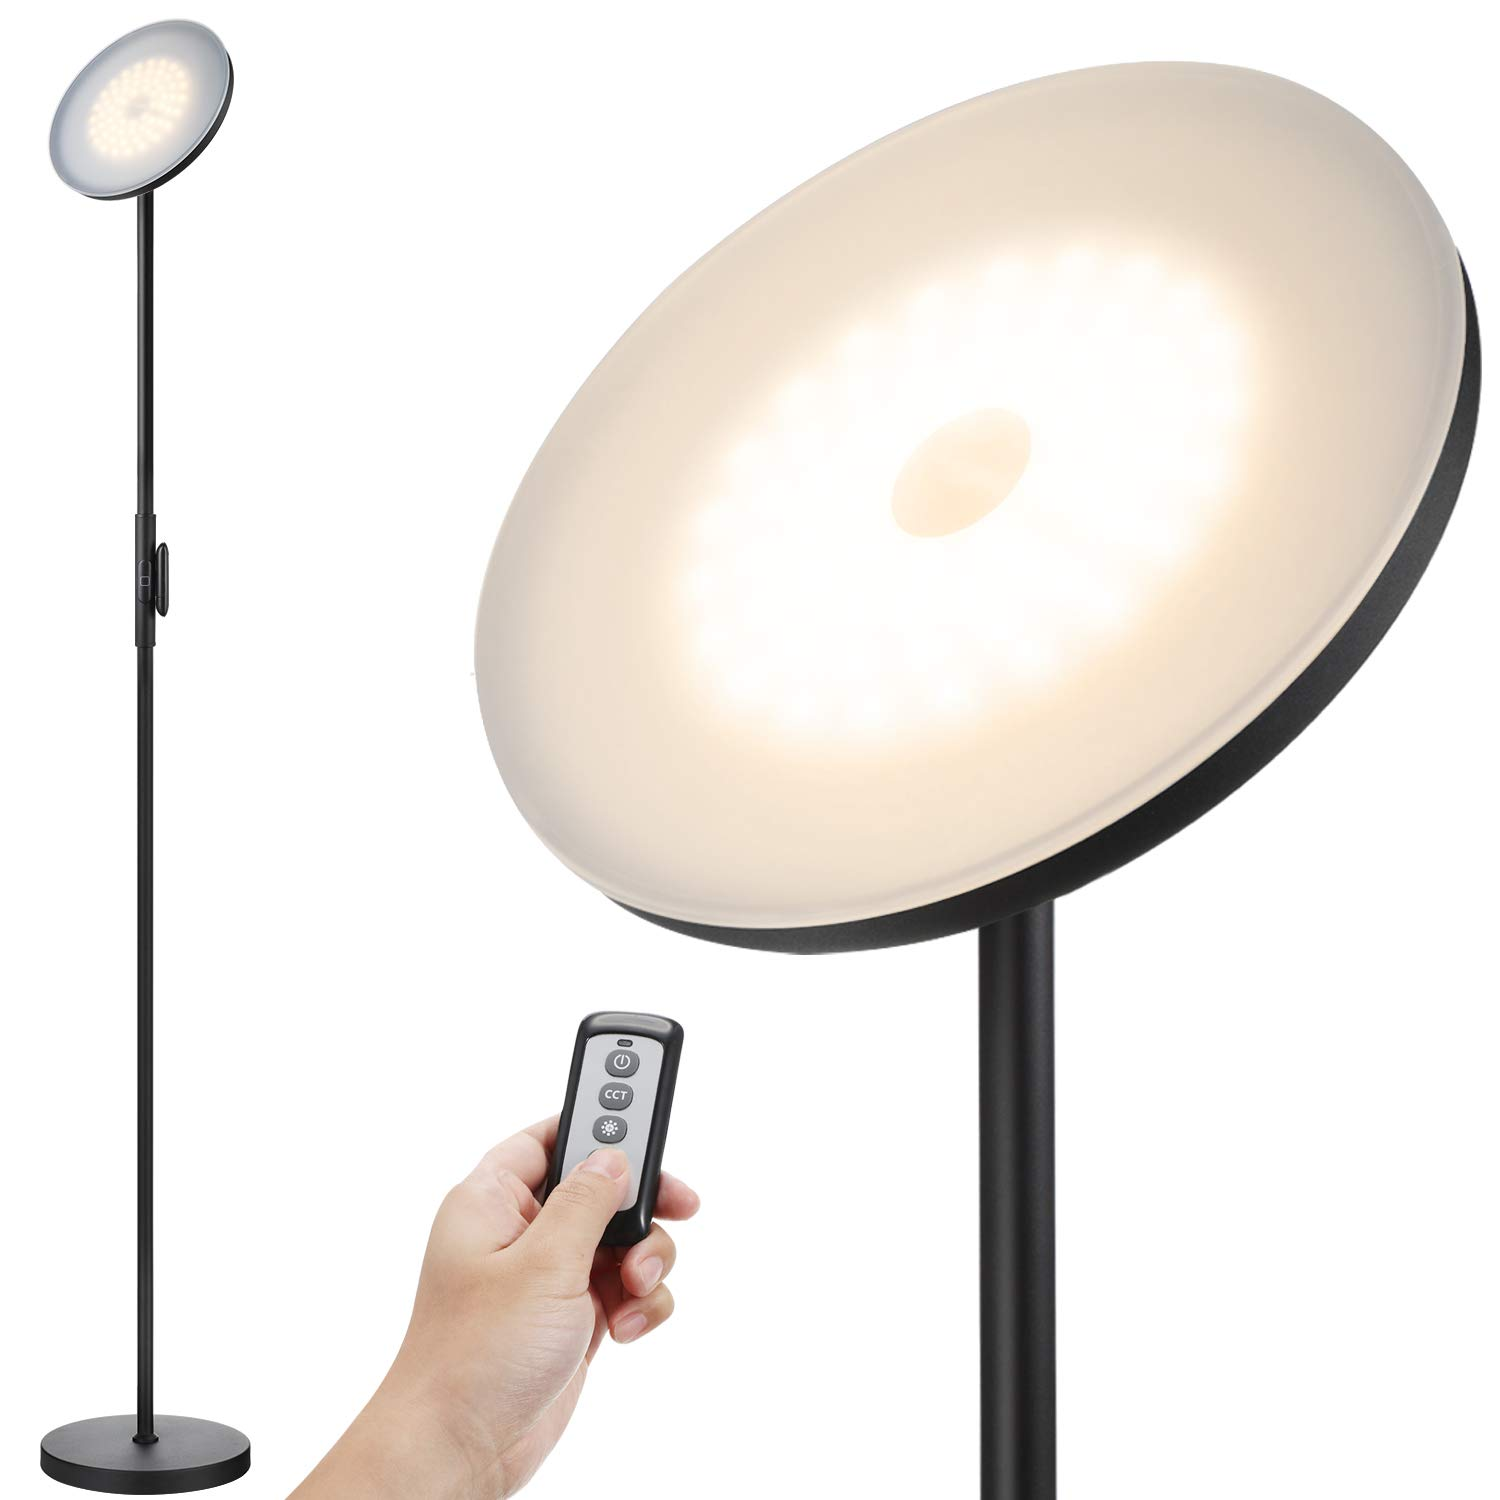 JOOFO Torchiere Temperatures Lamps Tall Office%EF%BC%88Black%EF%BC%89